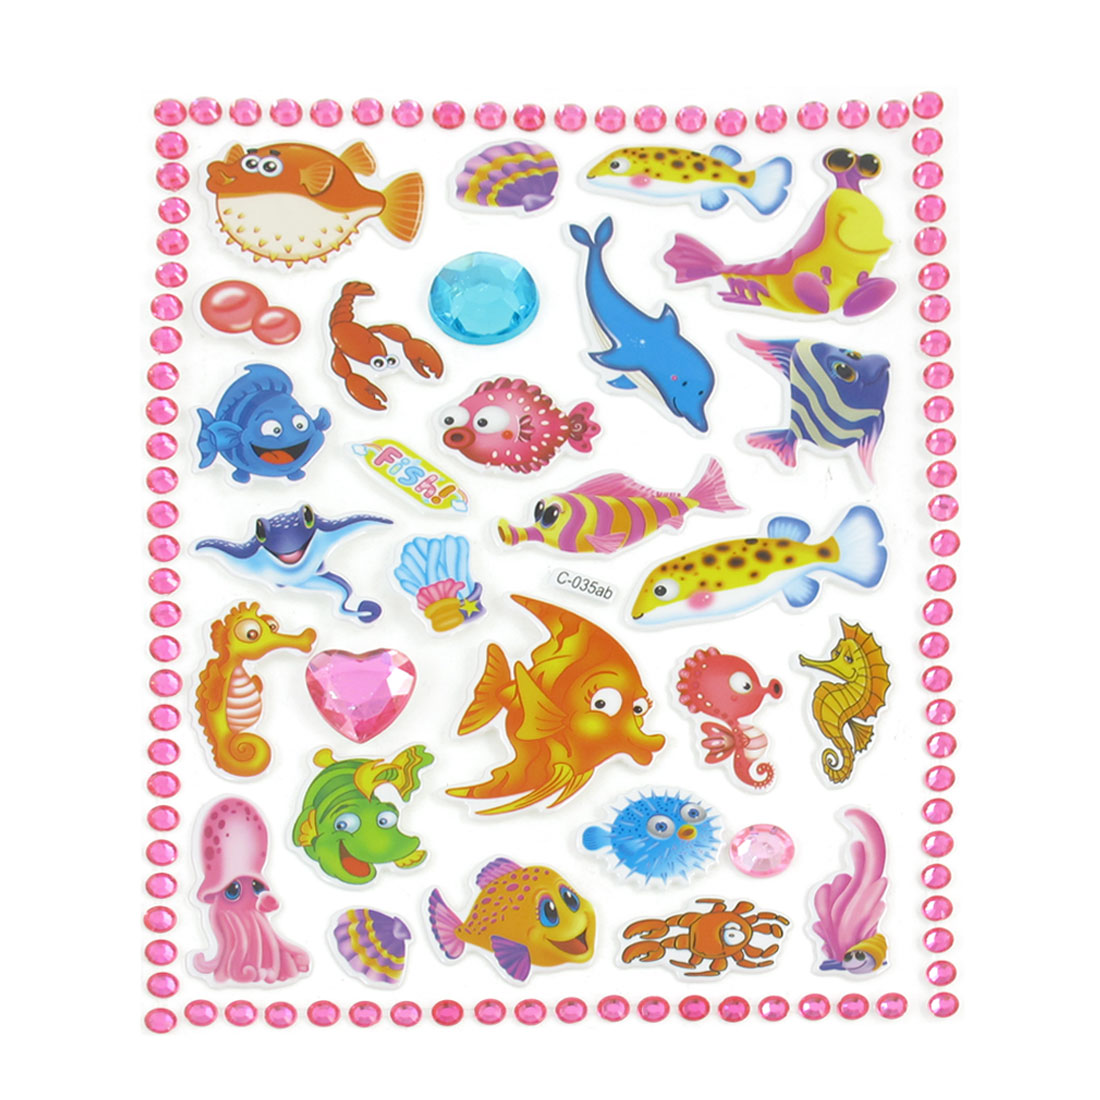 Kid Multicolored Fish Crab Dolphin Craft Scrapbook Stickers